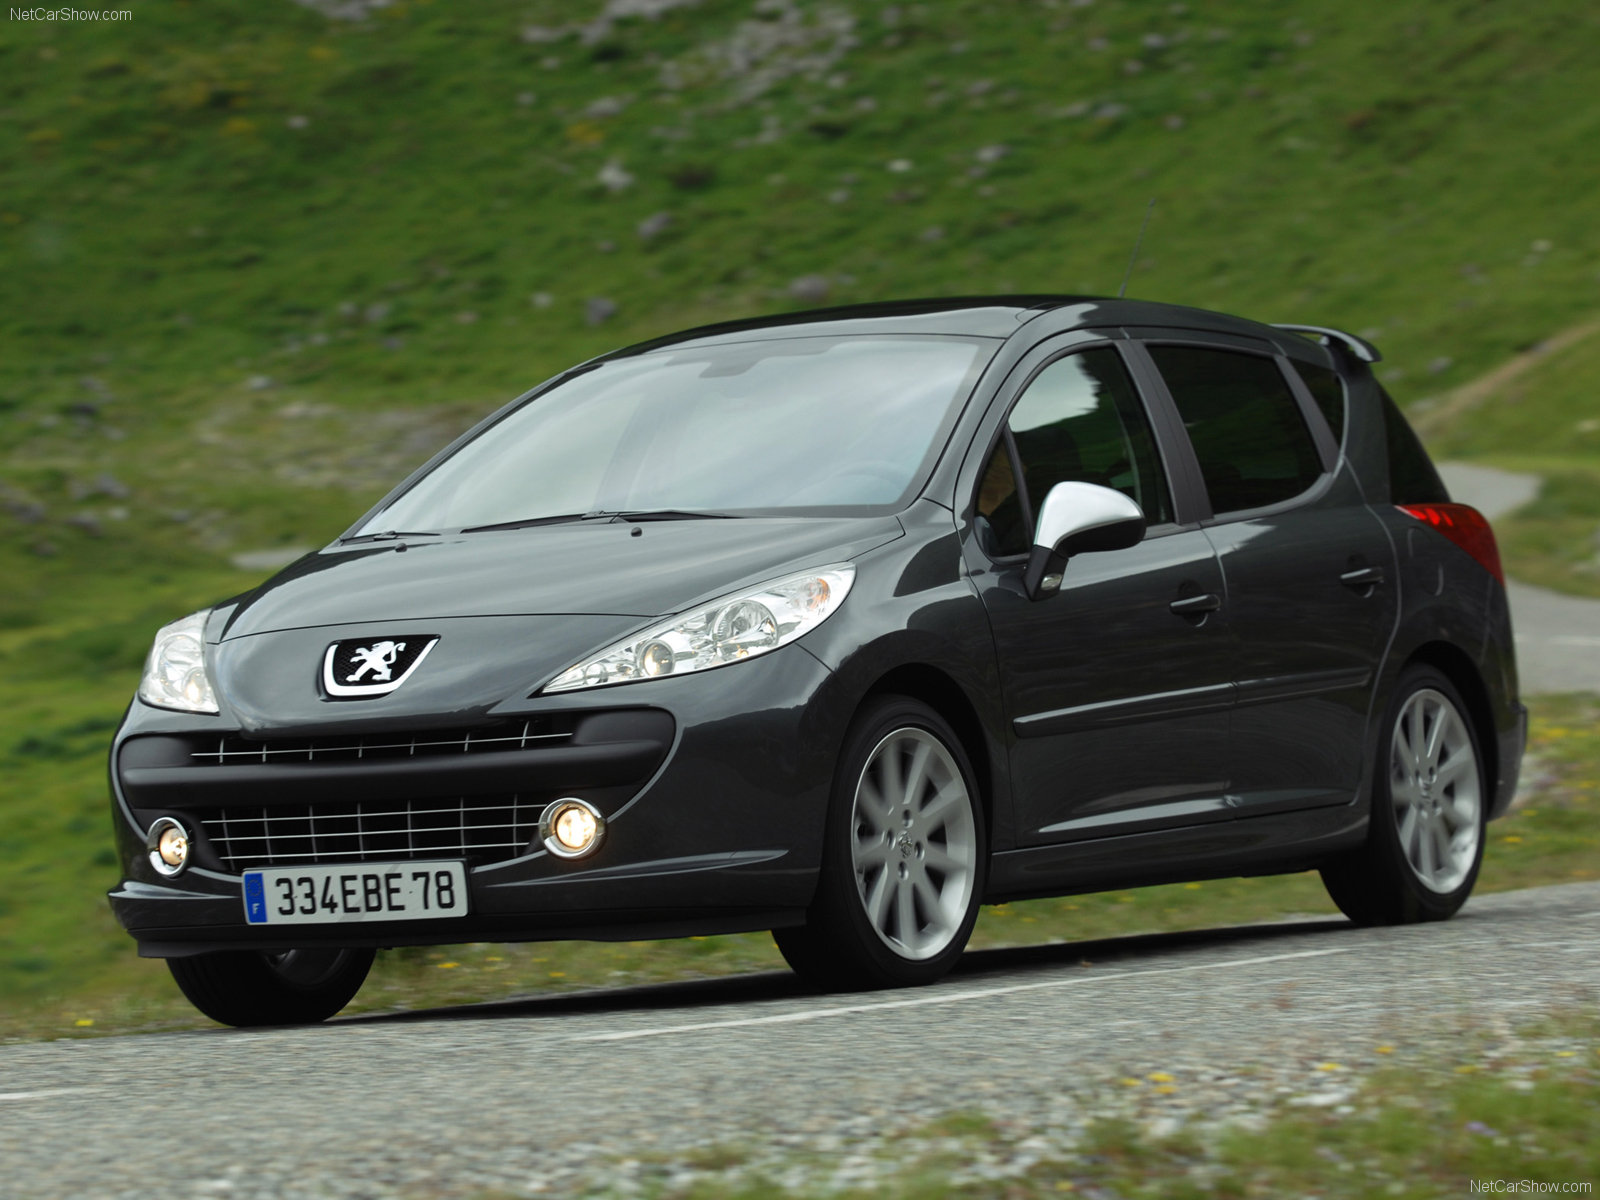 peugeot 207 sw rc picture 46815 peugeot photo gallery. Black Bedroom Furniture Sets. Home Design Ideas